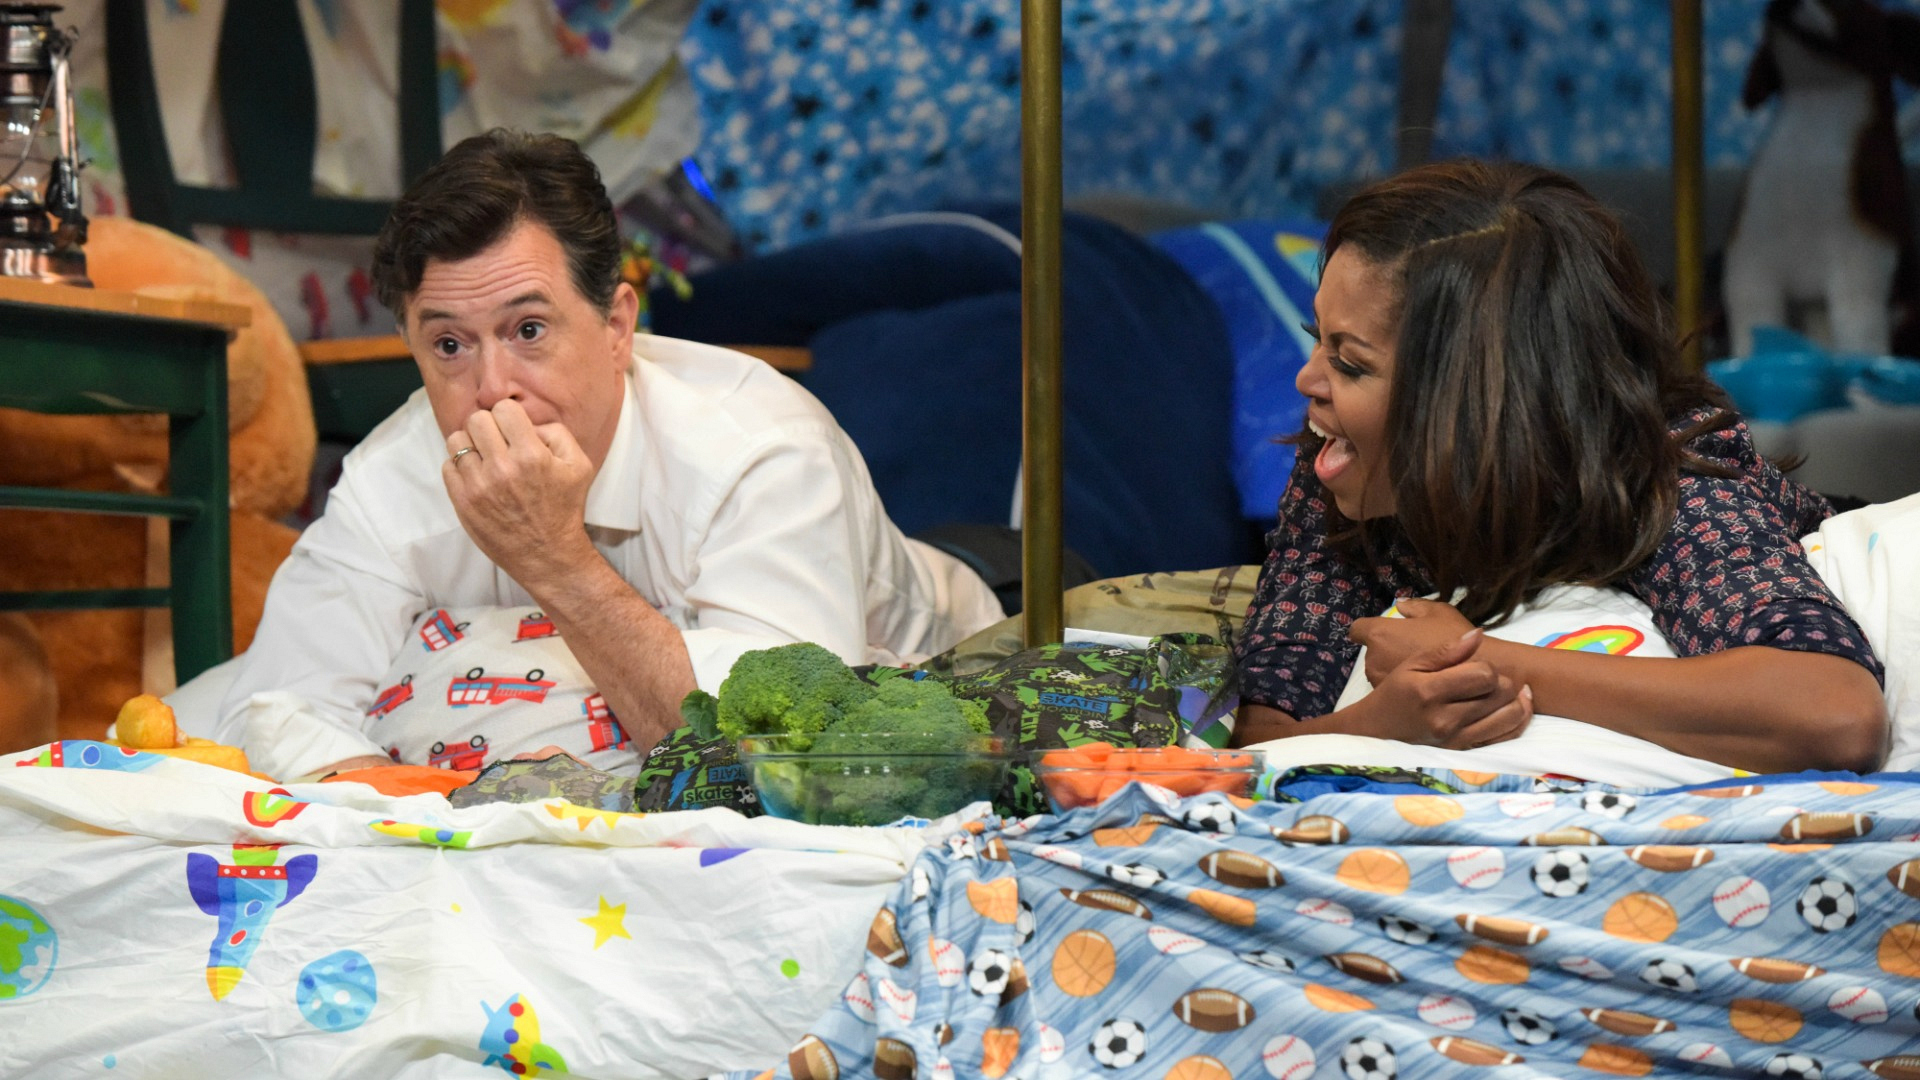 When she built a blanket fort with Stephen Colbert on The Late Show